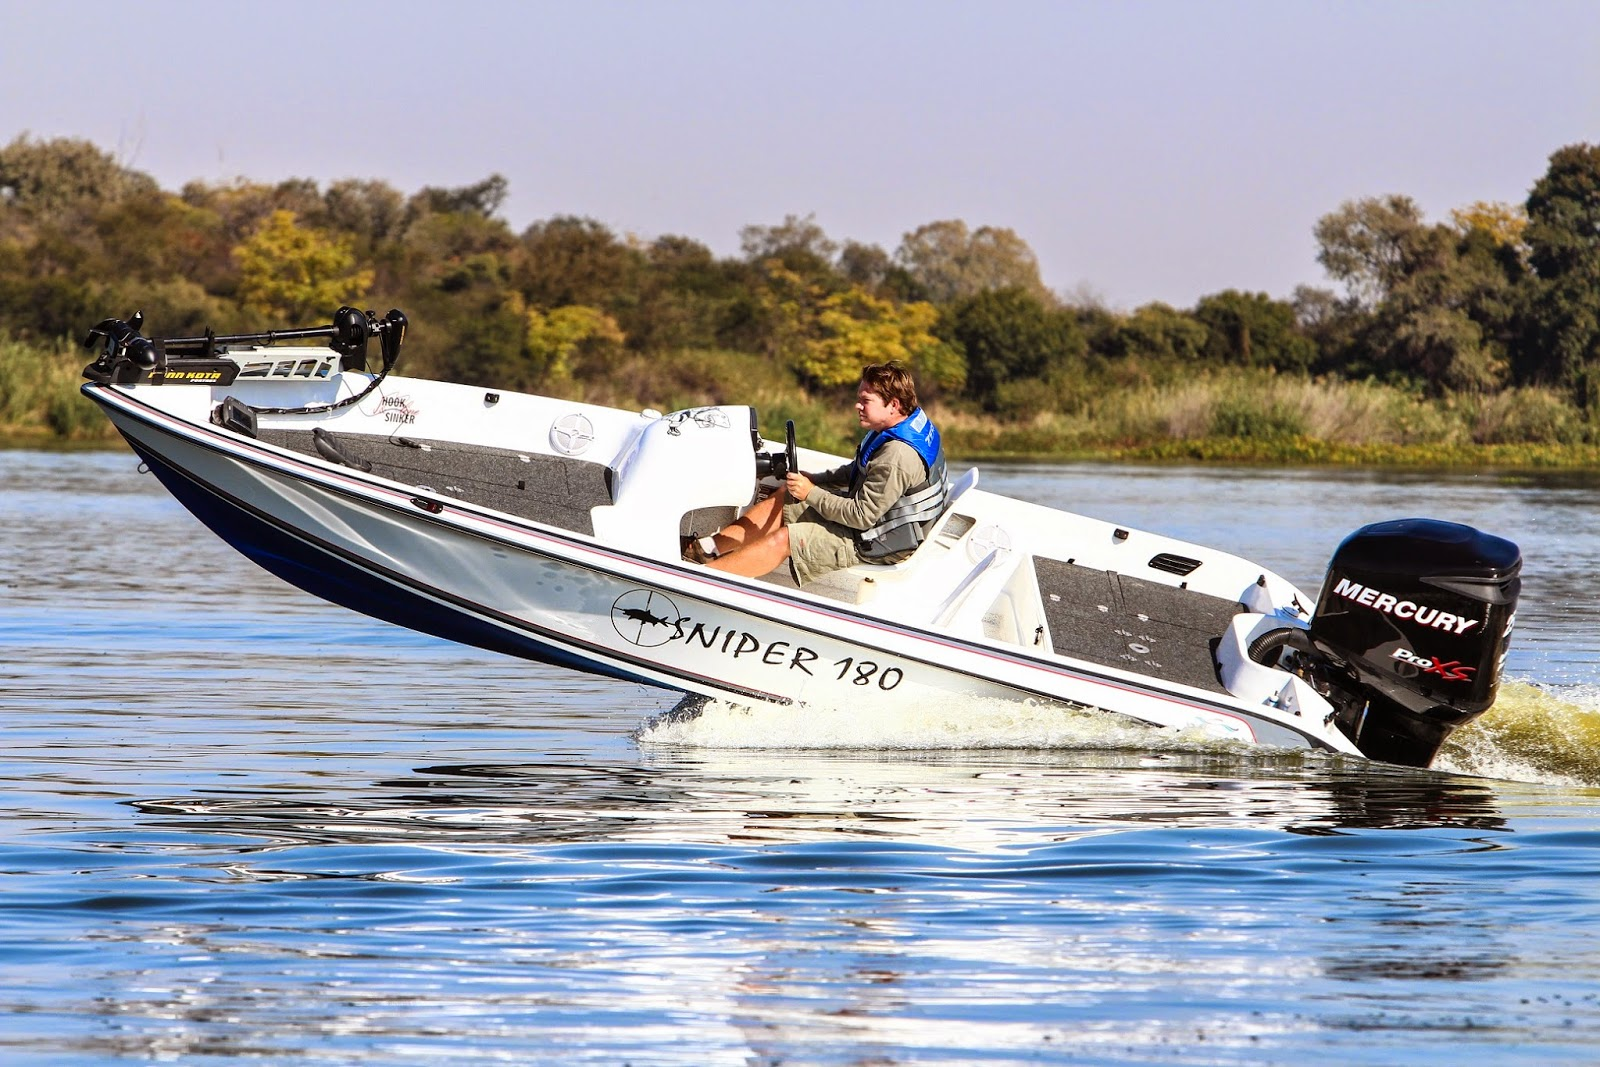 All species fishing in Zimbabwe, fishing boats south africa, fishing boats namibia, fishing boats zambia